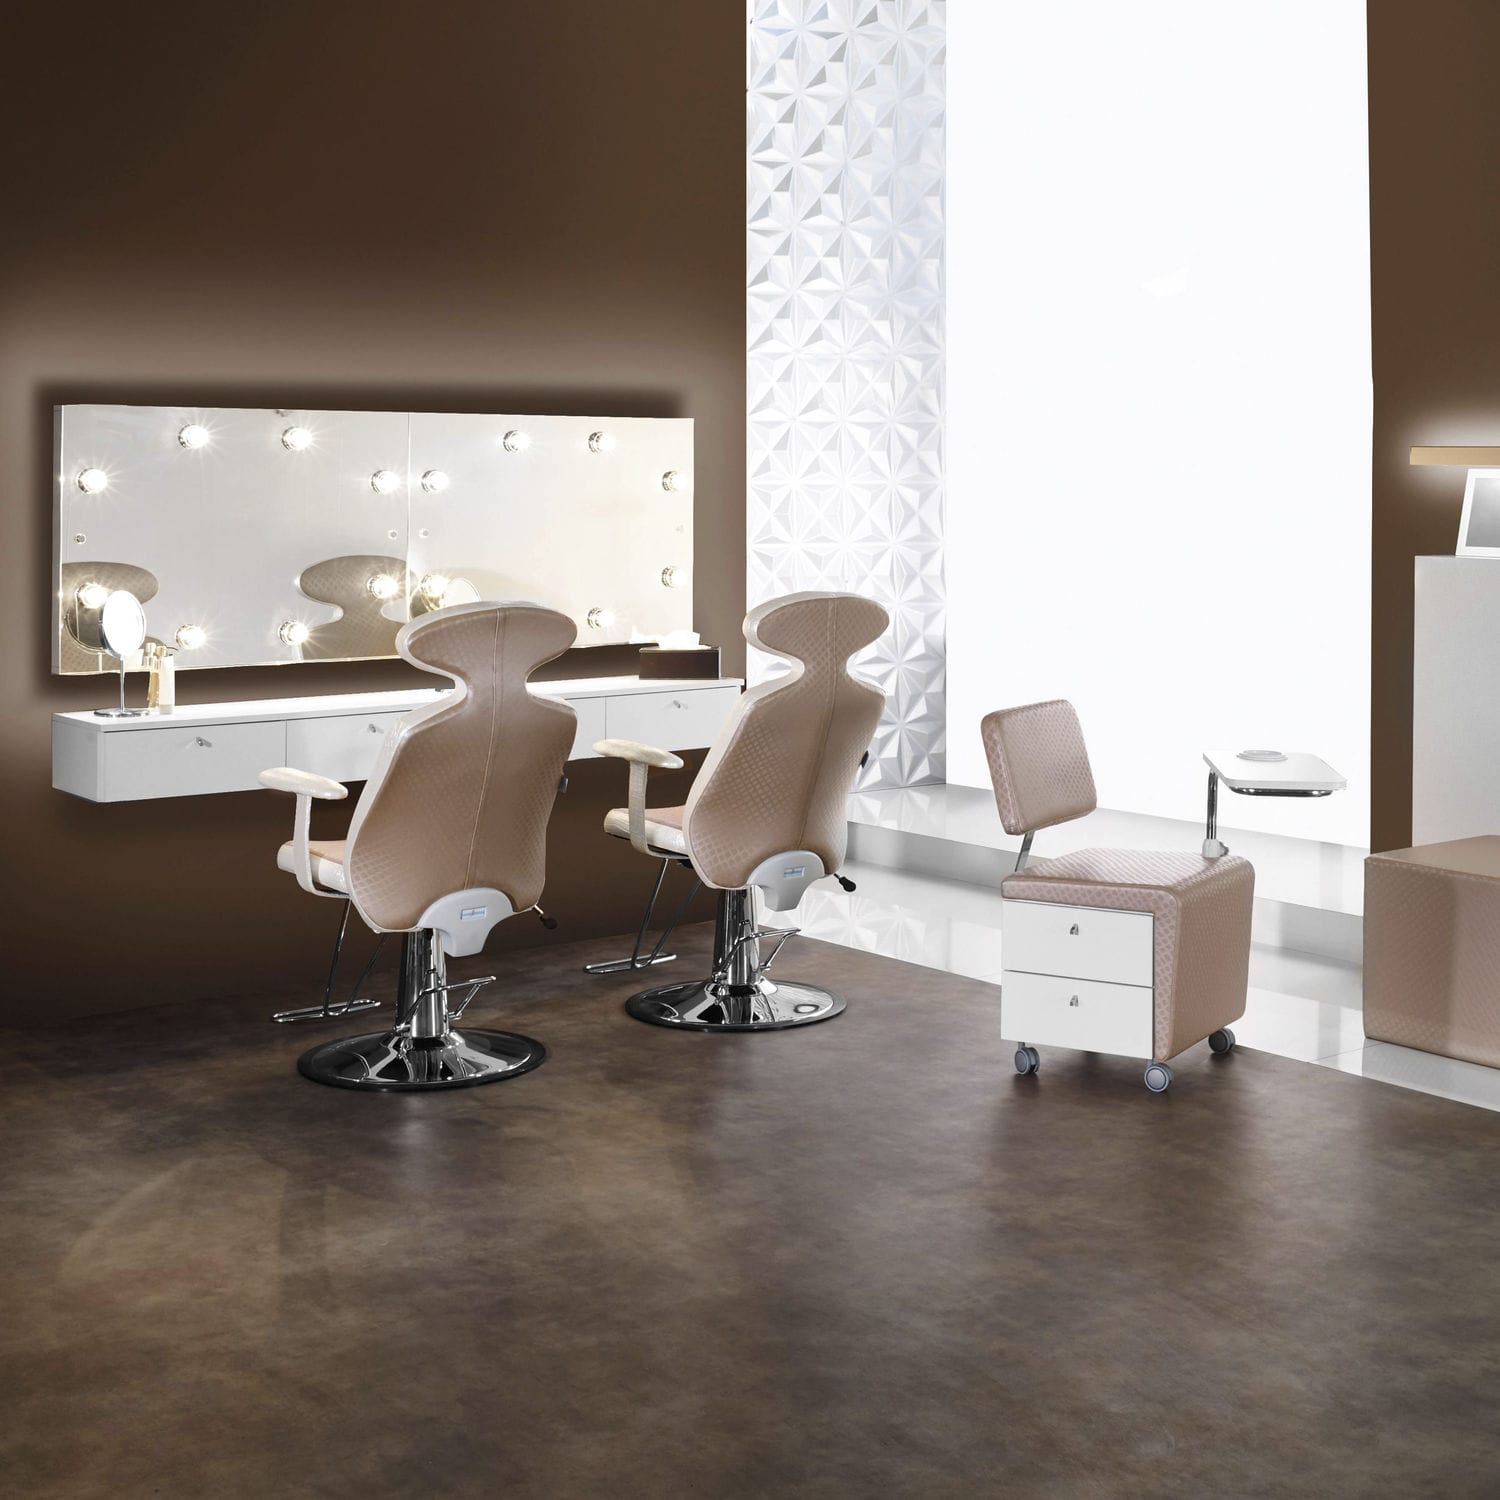 Contemporary Dressing Table Wooden Wall Mounted For Hairdressers LAS VEGAS Medical